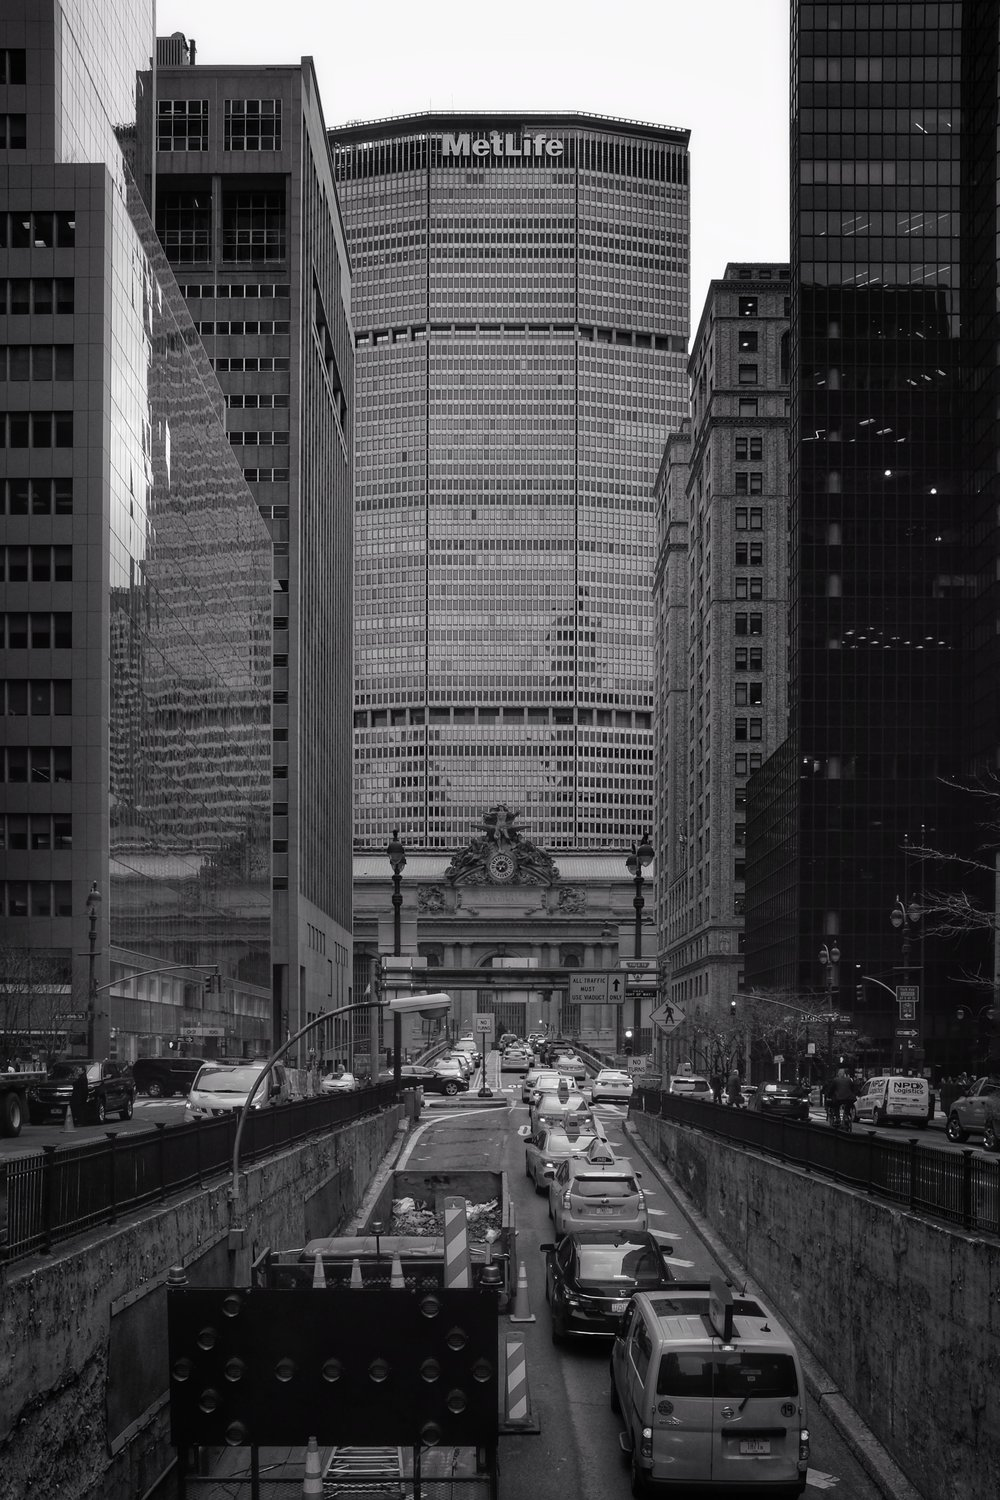 Grand Central Terminal. Met Life Building. Park Avenue. New York City. 2017.